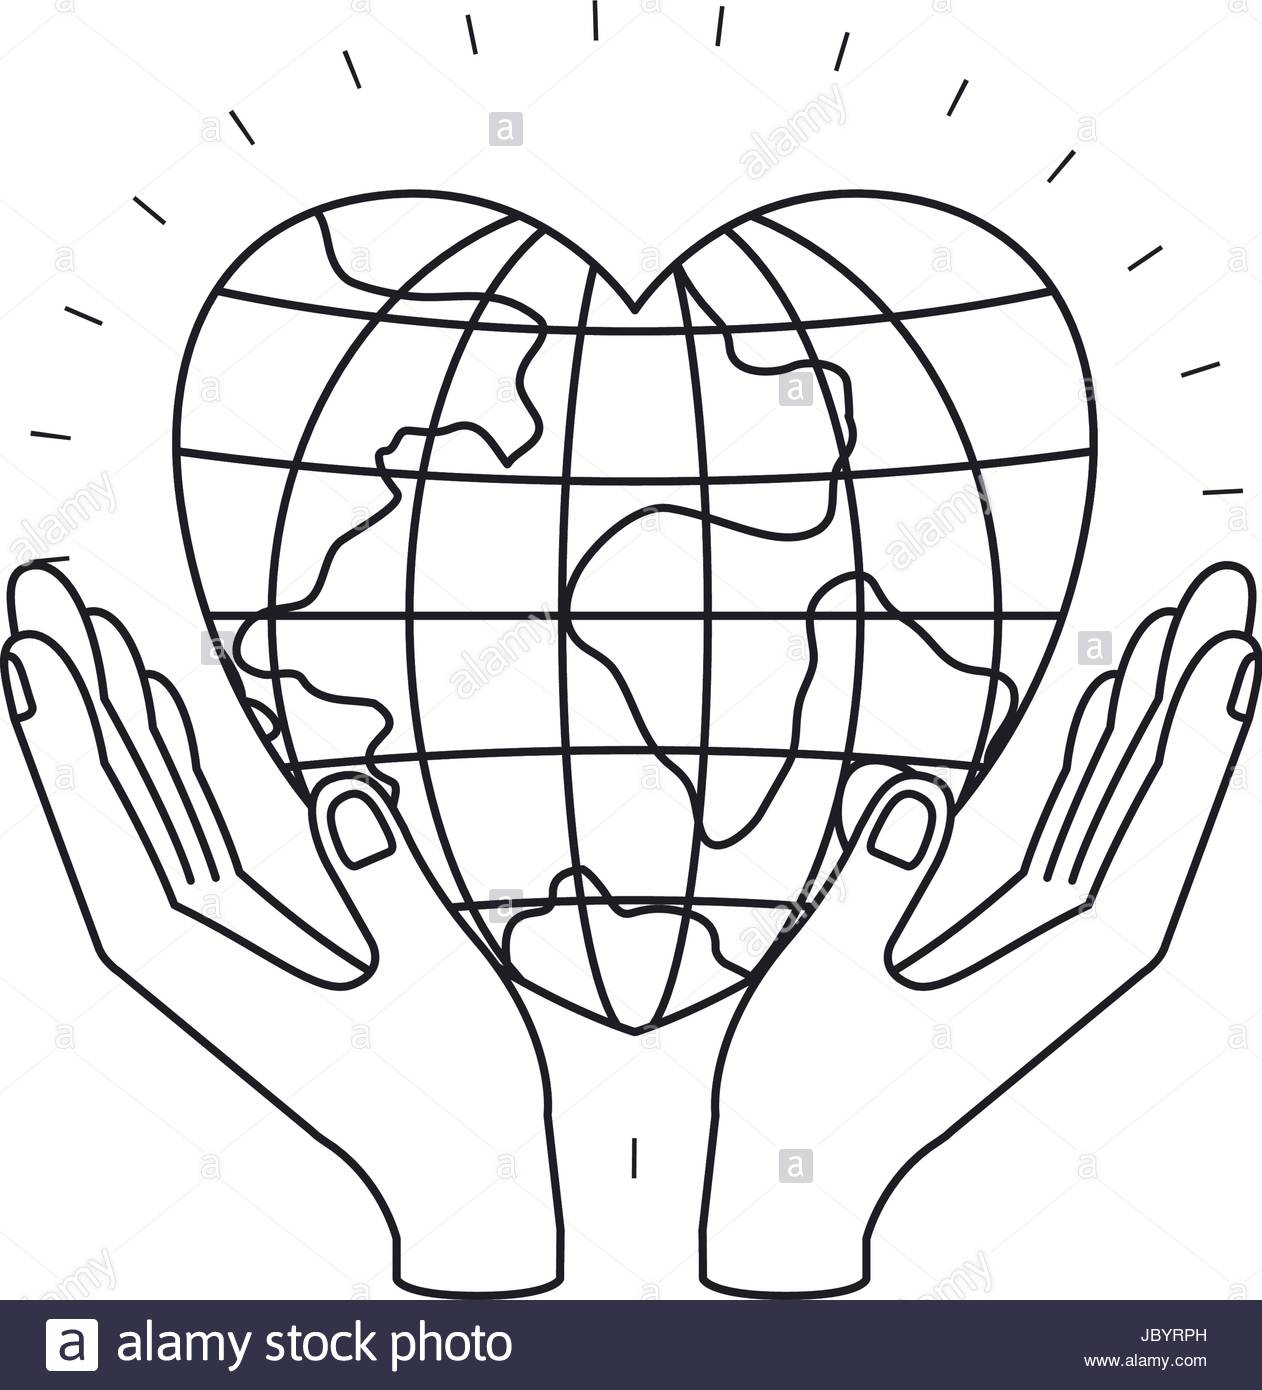 1262x1390 Silhouette Hands With Floating Earth Globe World In Heart Shape